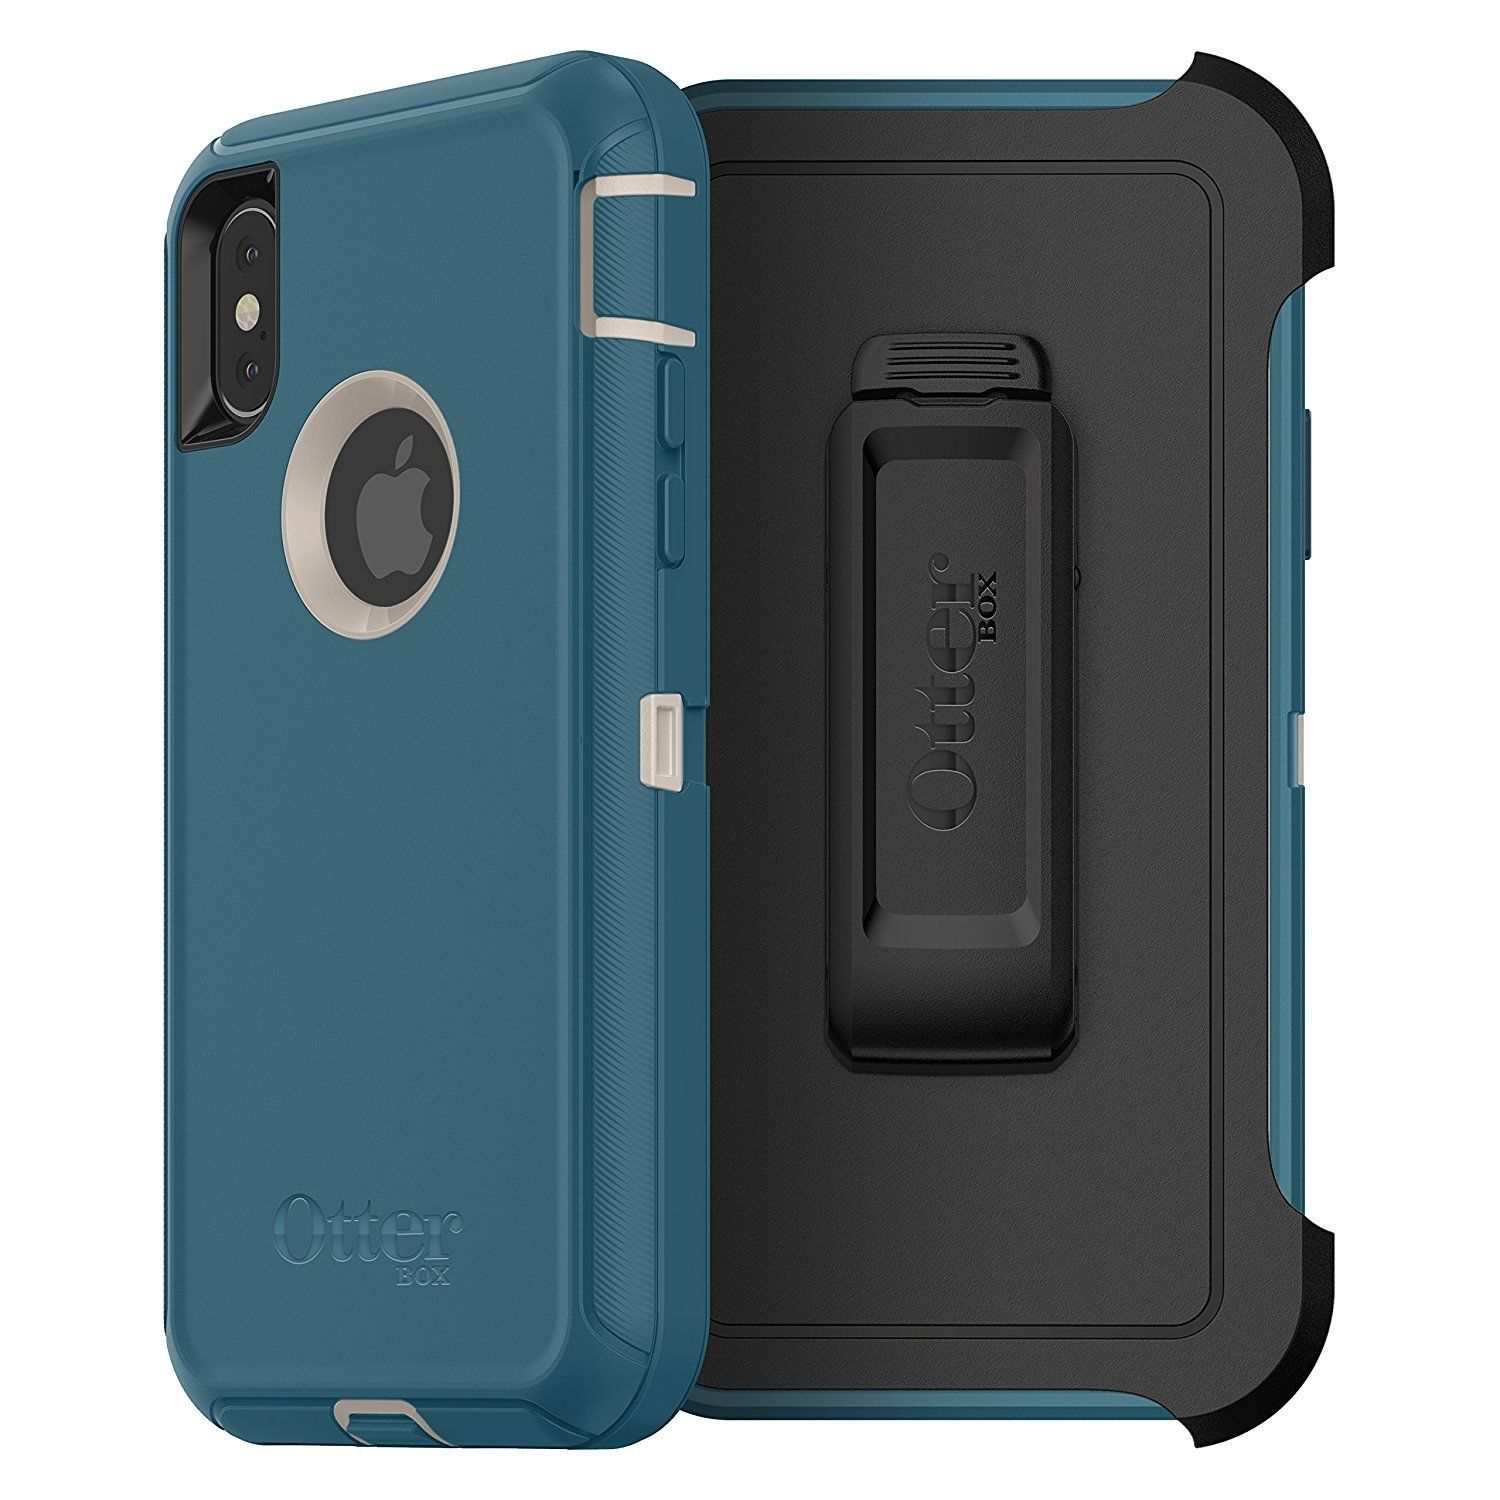 huge selection of bef4a 59cab Otterbox Defender Case: 11 customer reviews and 1310 listings